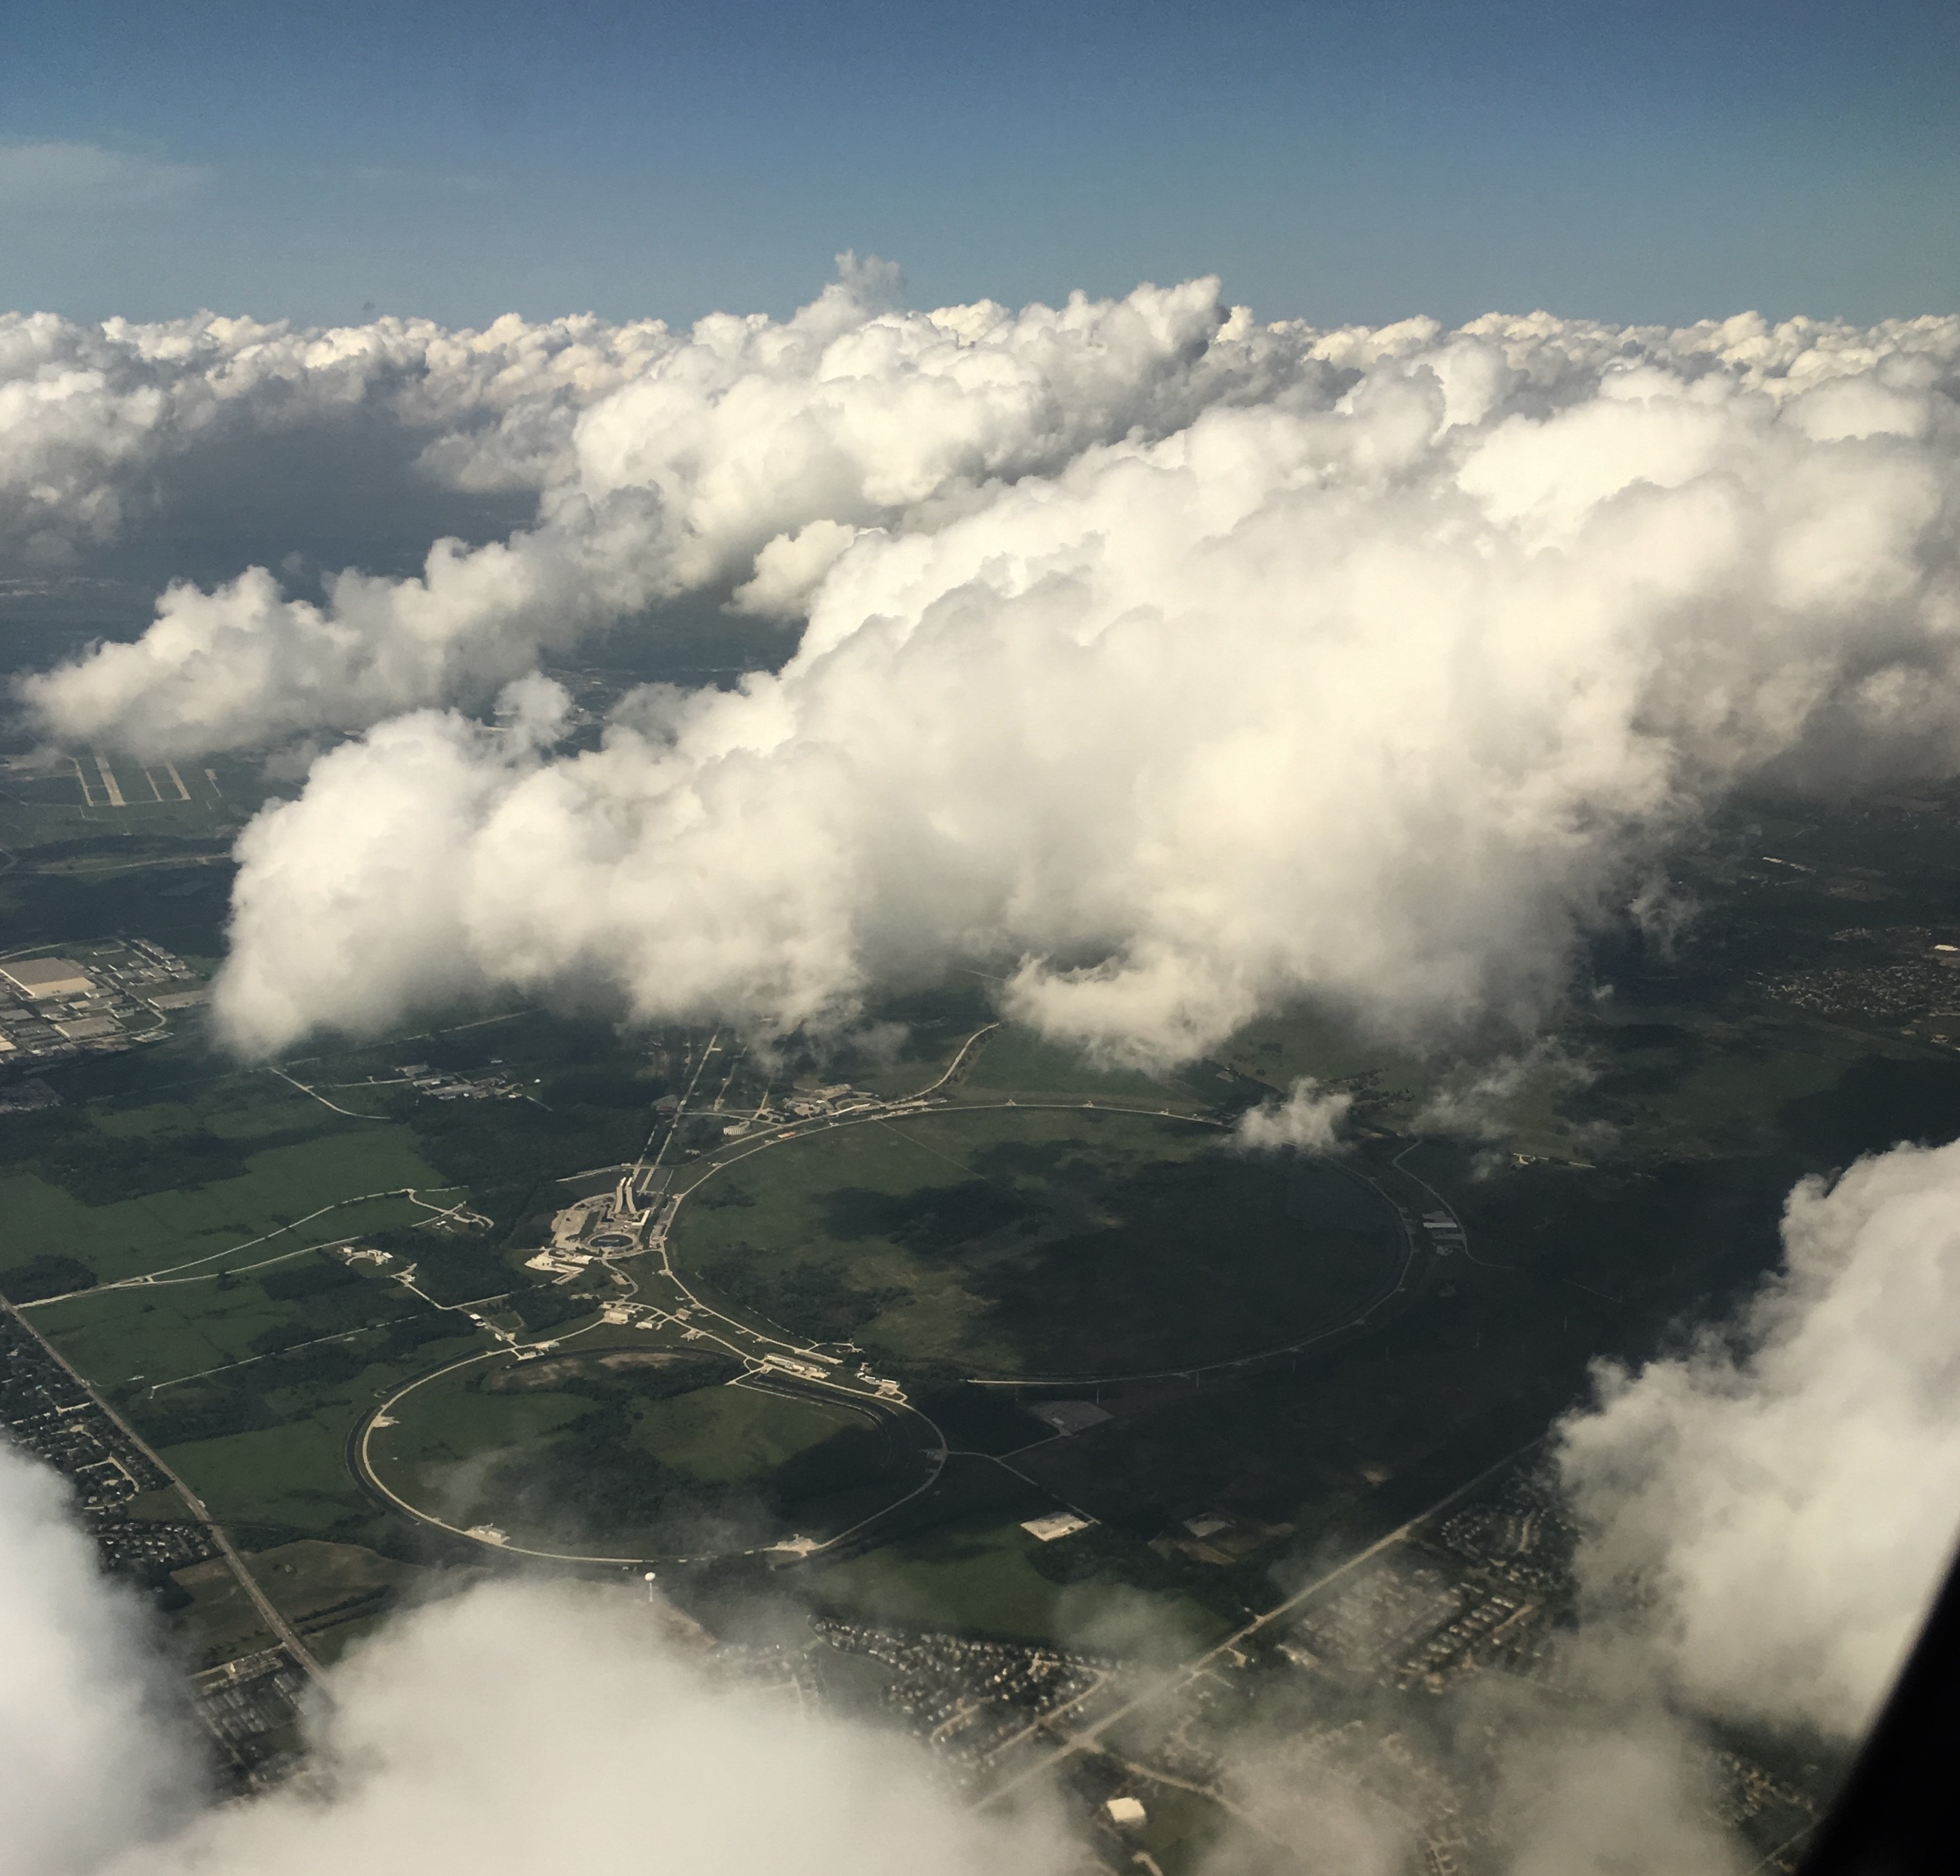 On a July 1 flight to Omaha, Nebraska, the photographer captured this view of Fermilab, visible between the clouds. aerial, cloud, sky Photo: Heidi Rowe